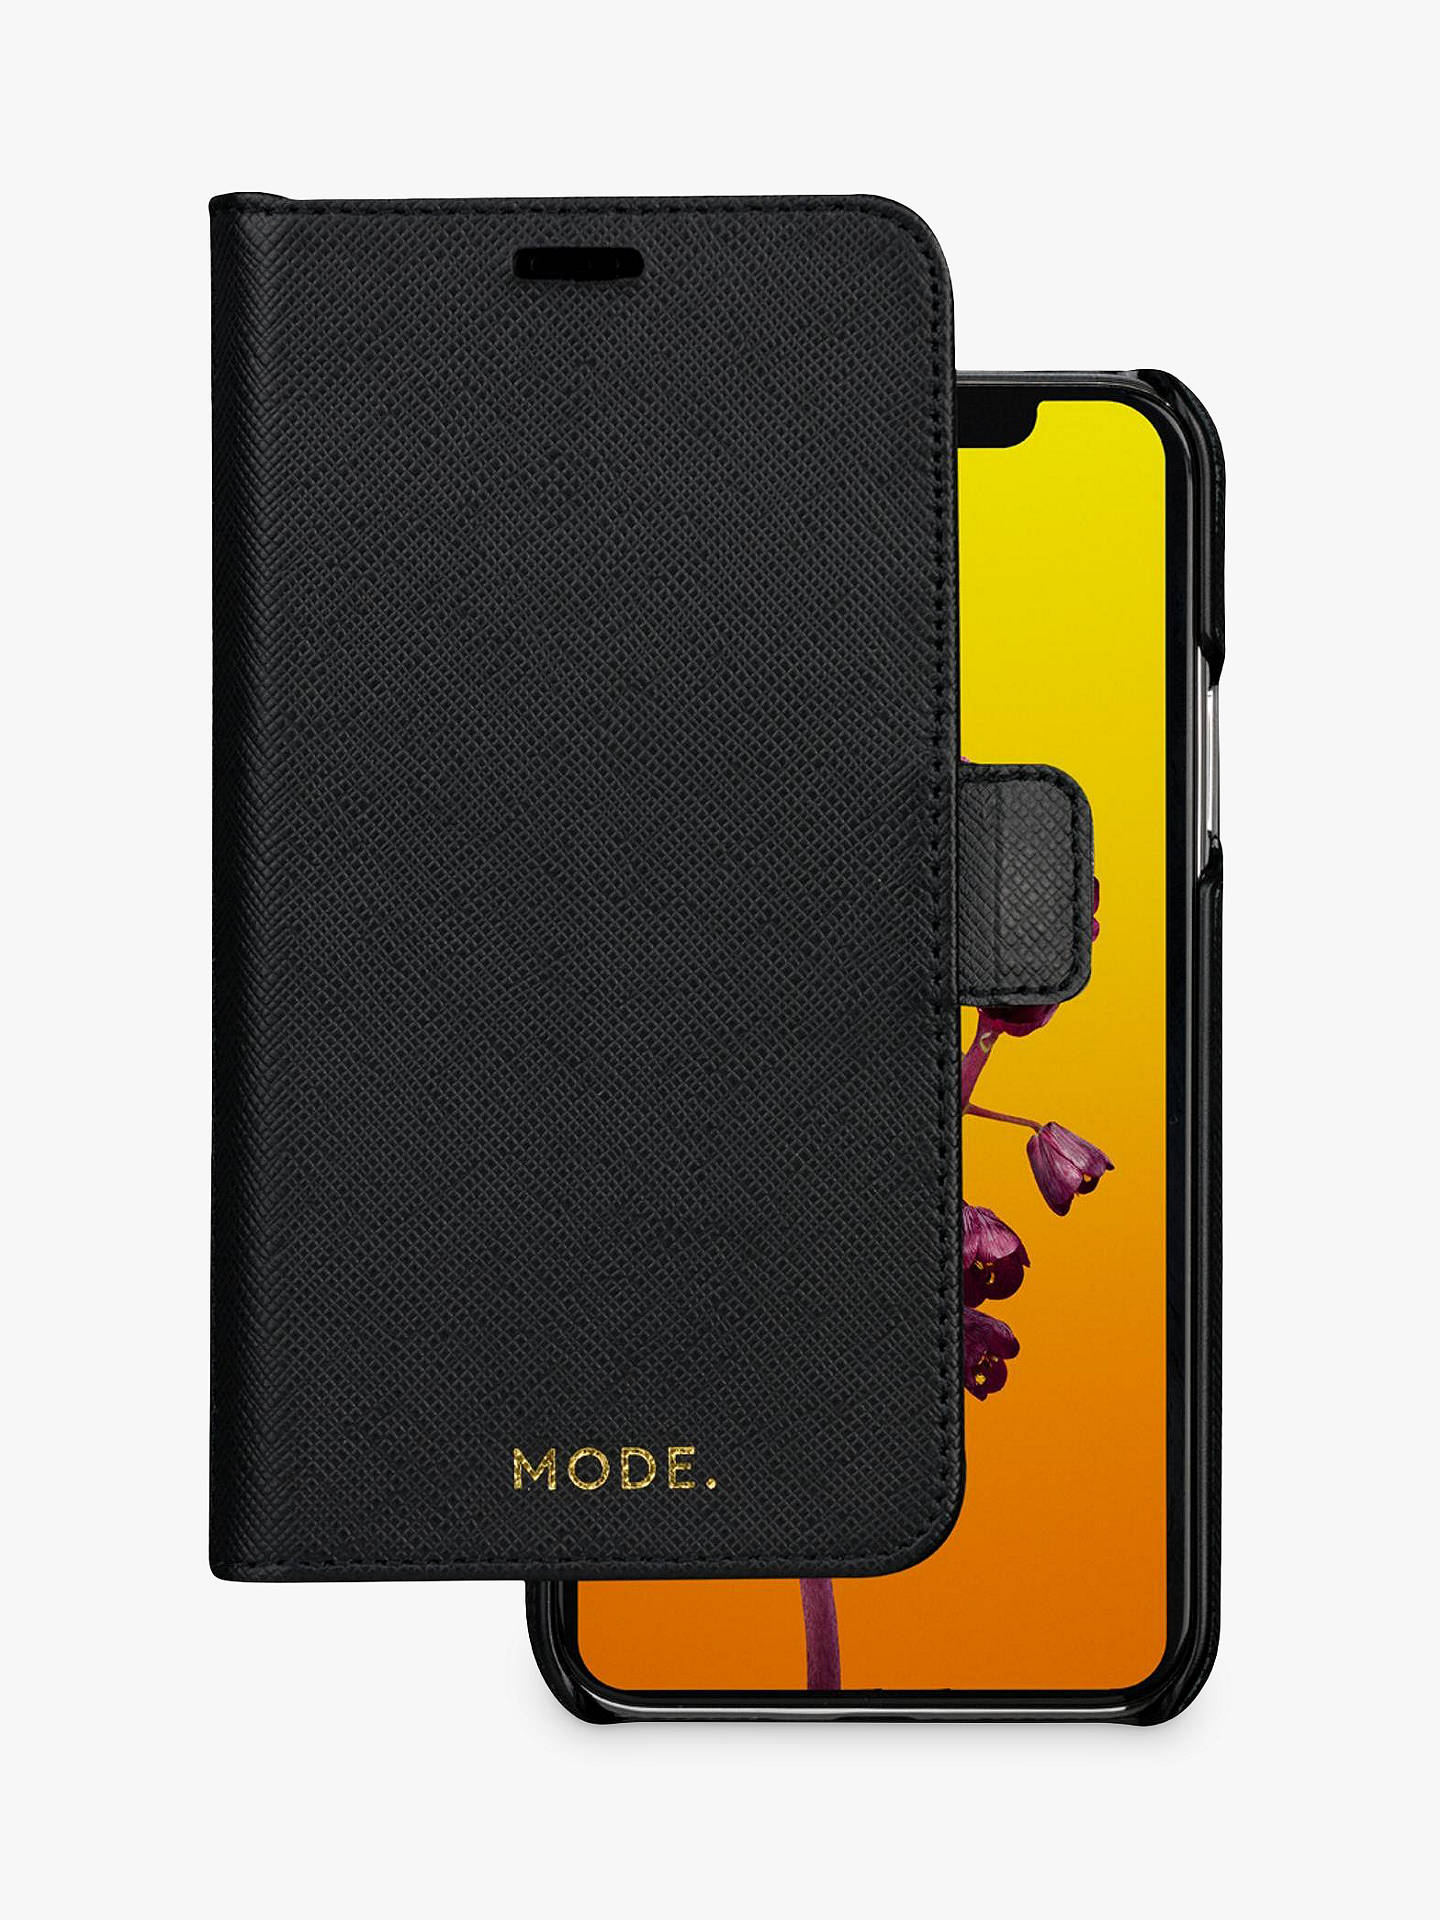 Buy MODE New York Leather dbramante1928 Folio/Cradle Case for iPhone X/XS, Night Black Online at johnlewis.com